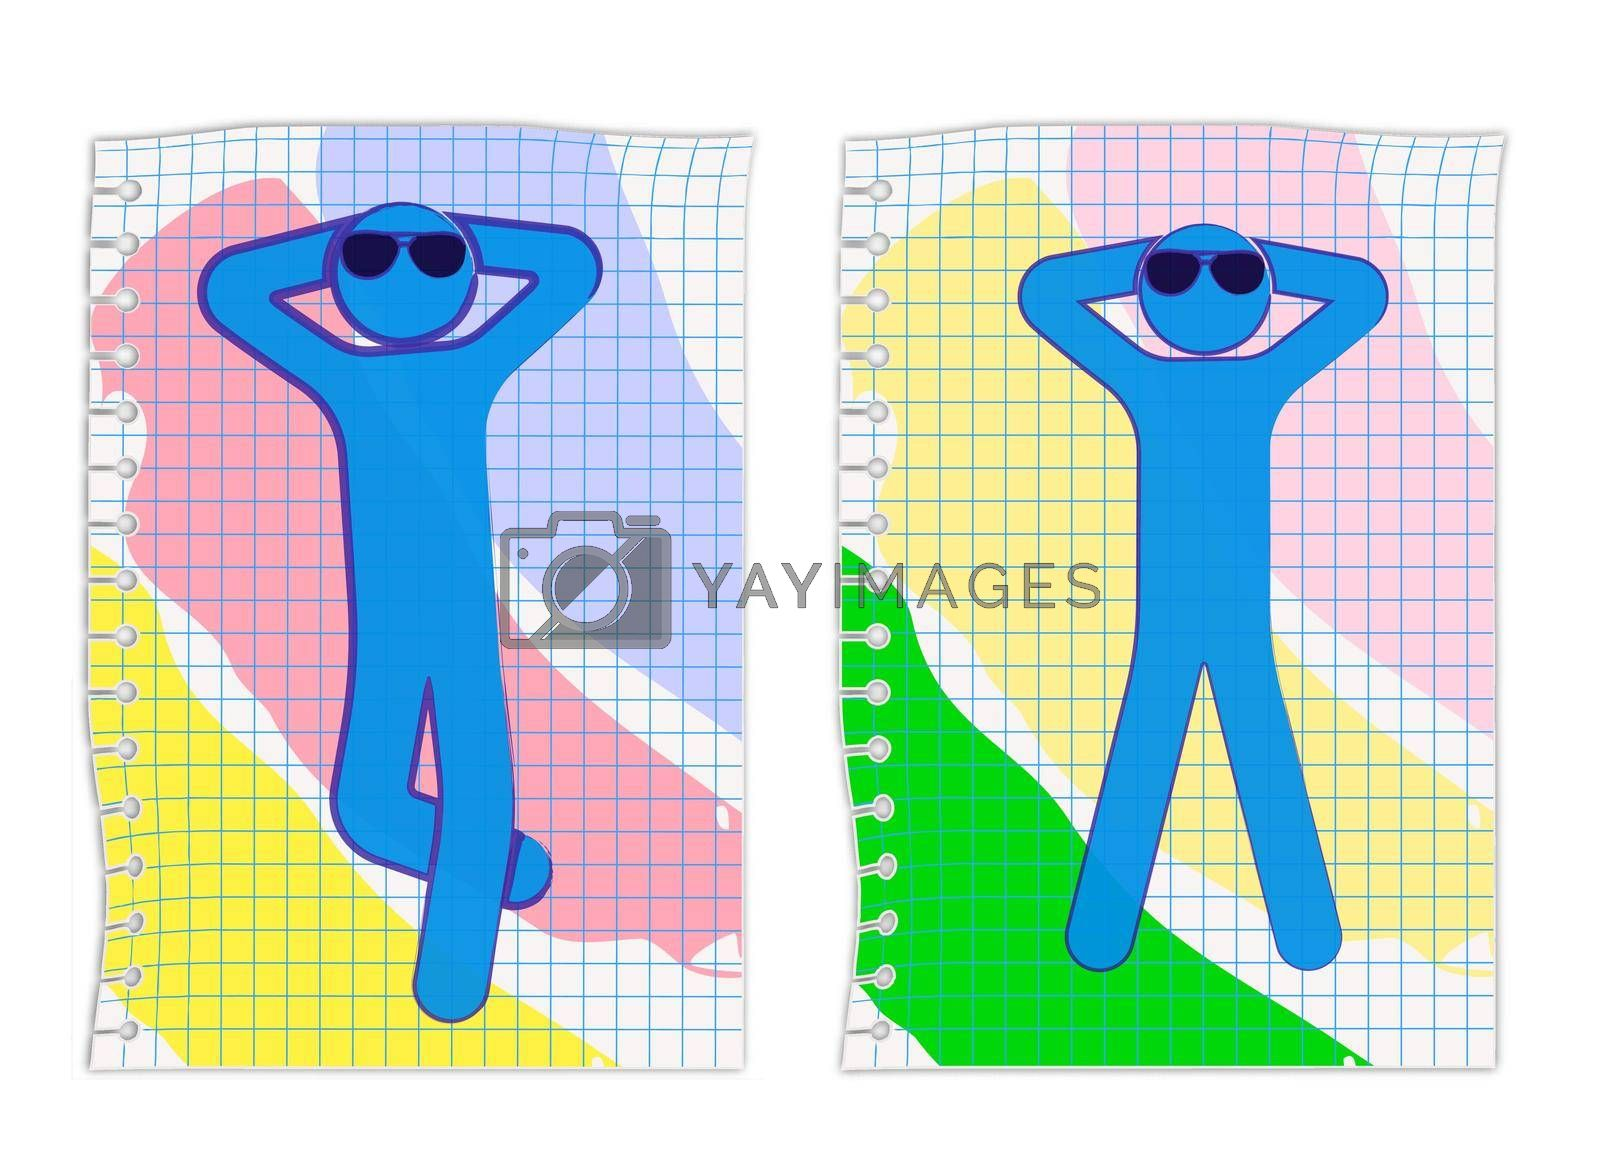 man with glasses lies on a colored towel, takes a sun bath. Summer vacation at sea. Ink drawing on a checkered sheet of paper. Isolated vector on white background